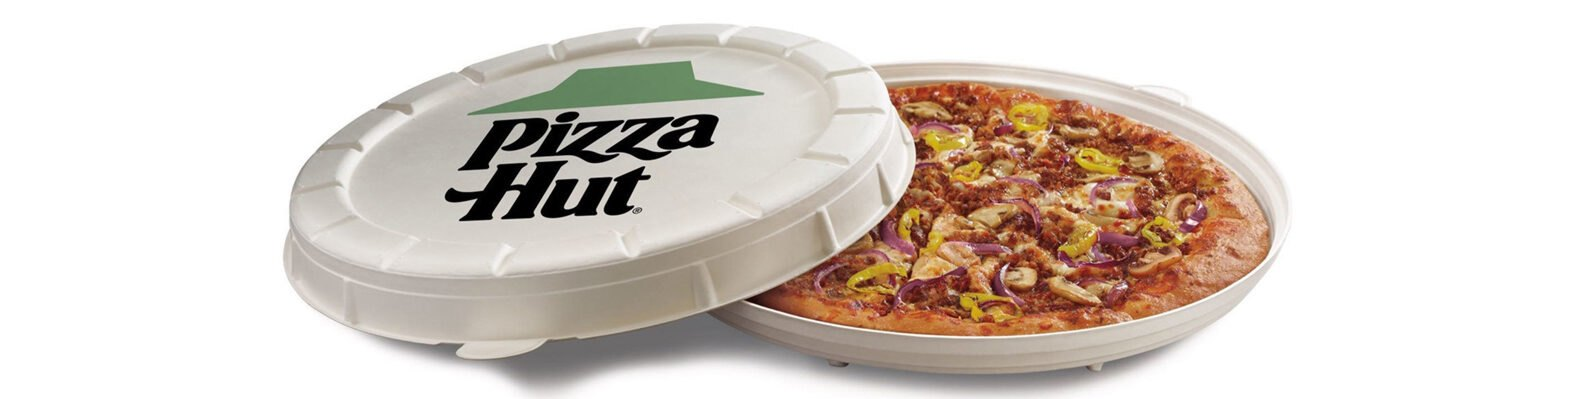 "veggie pizza in a compostable round container that reads, ""Pizza Hut"""